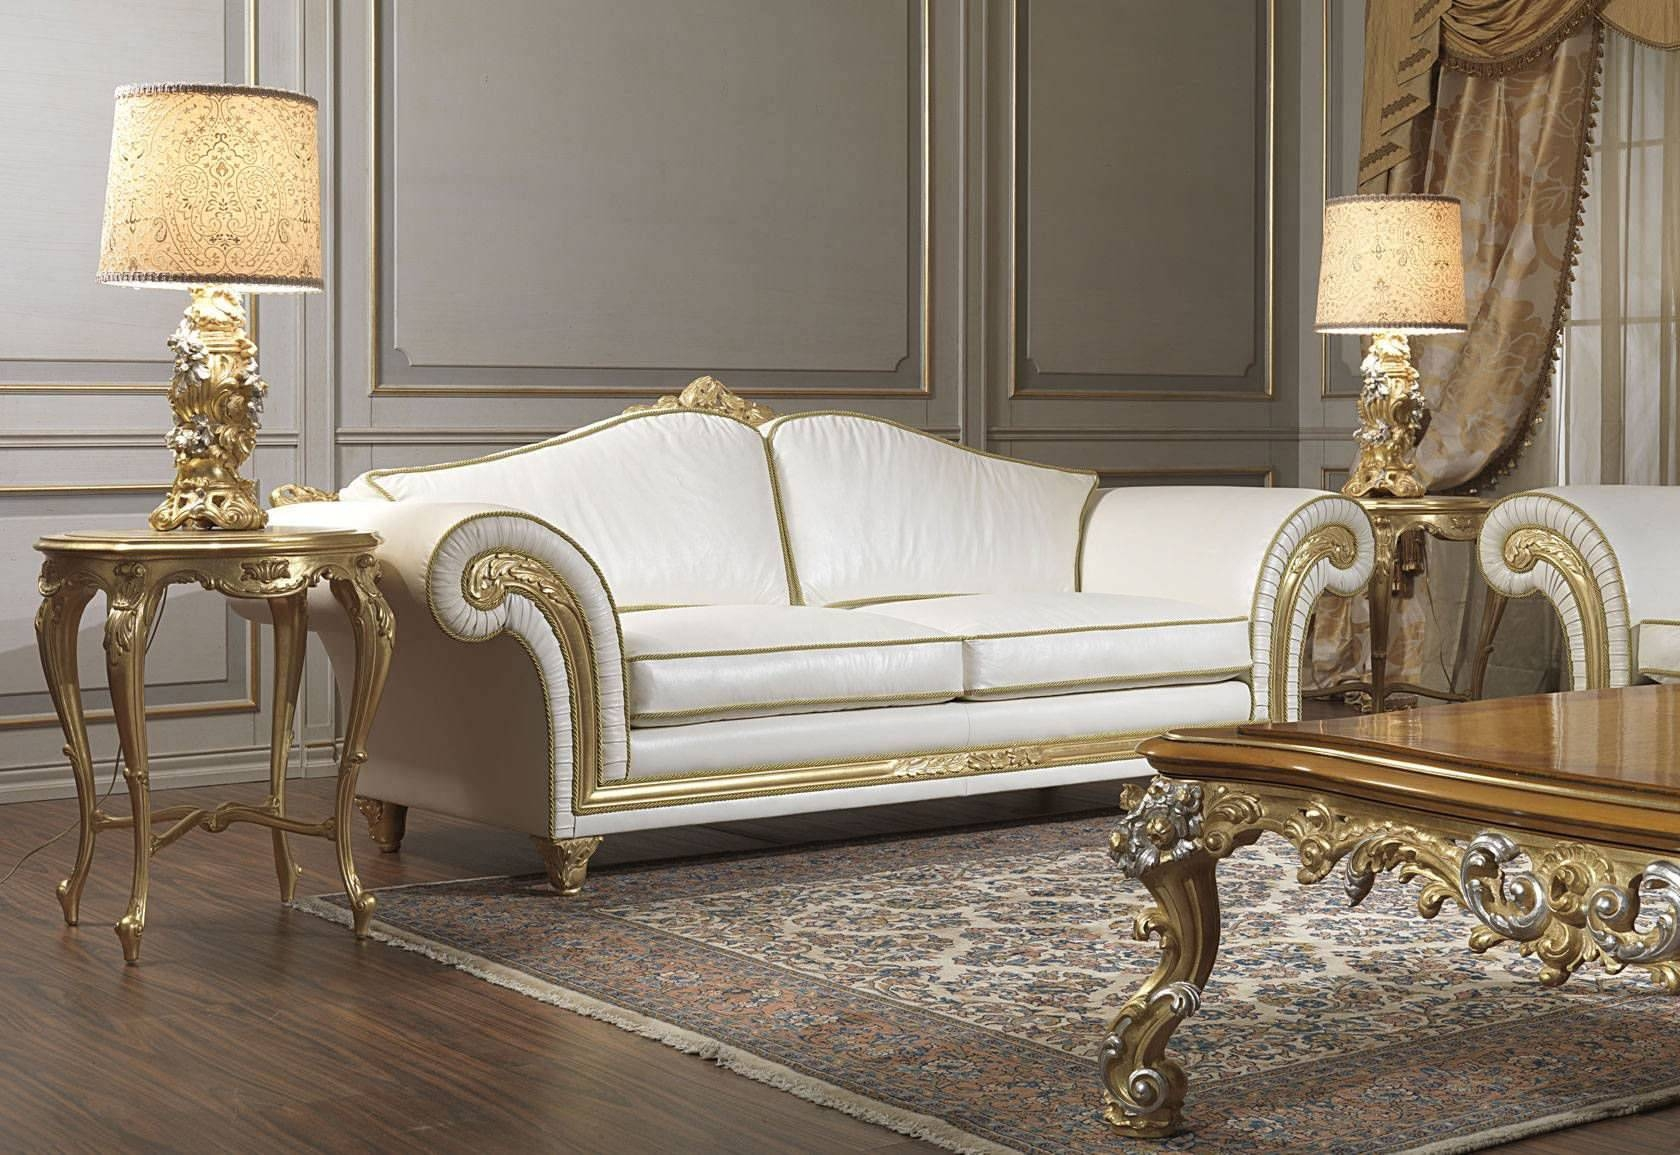 Classic Sofa / Leather / 2 Seater / White – Imperial – Vimercati Pertaining To Classic English Sofas (View 13 of 30)